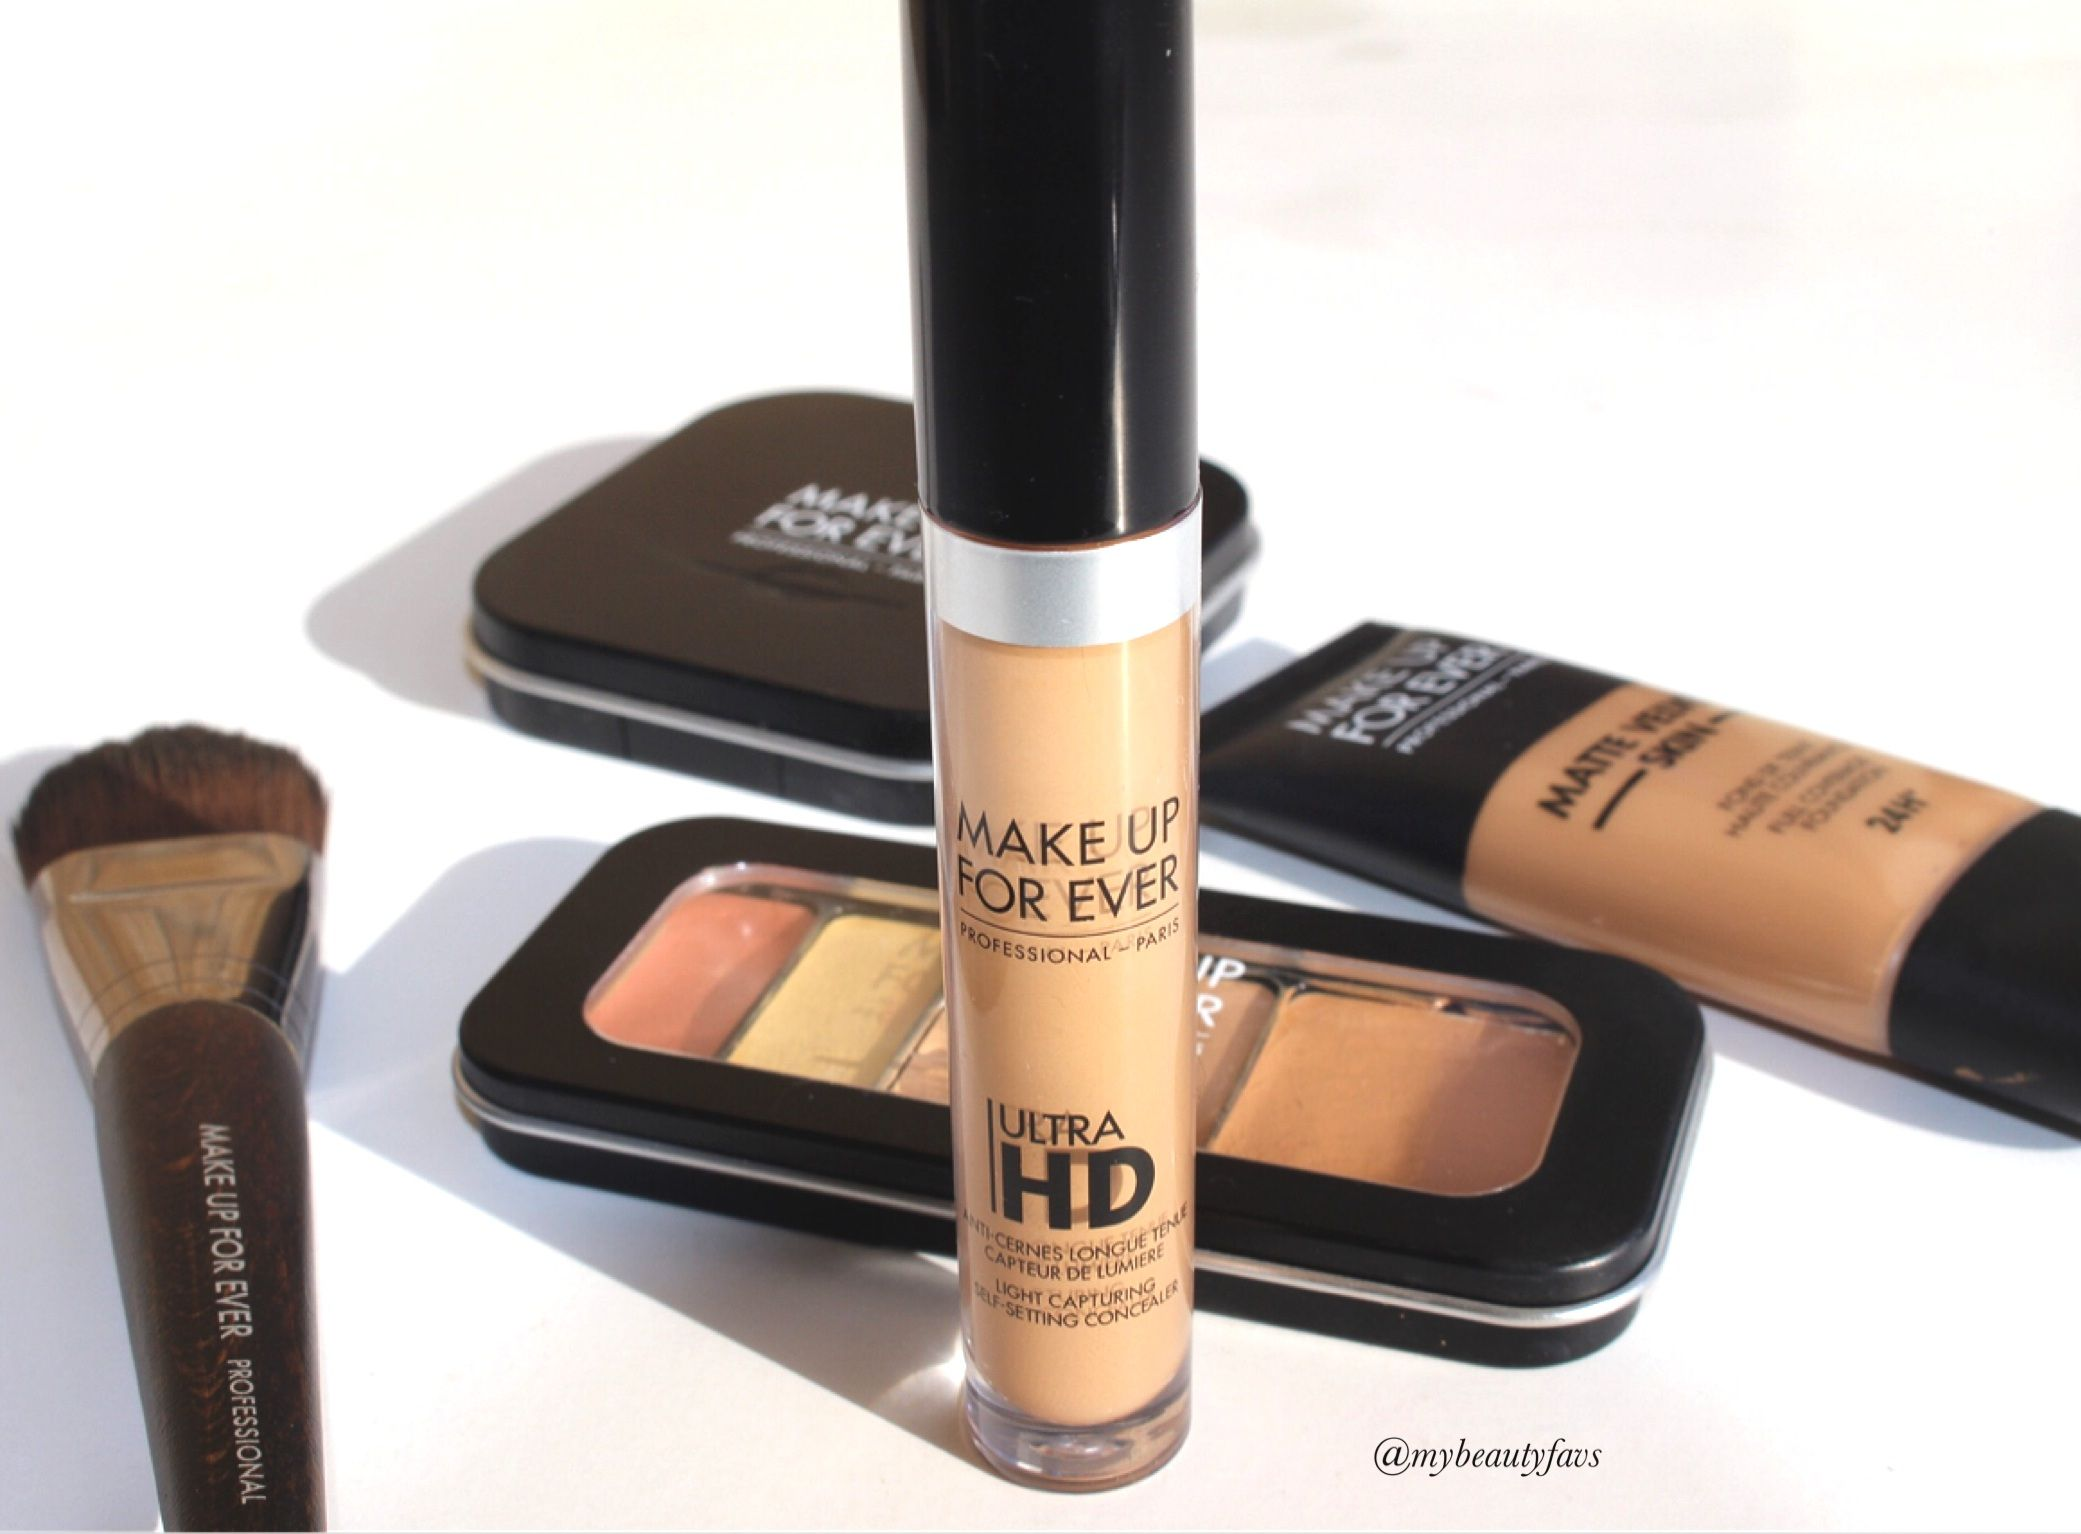 MUFE Ultra HD SelfSetting Concealer Shade 44 Review